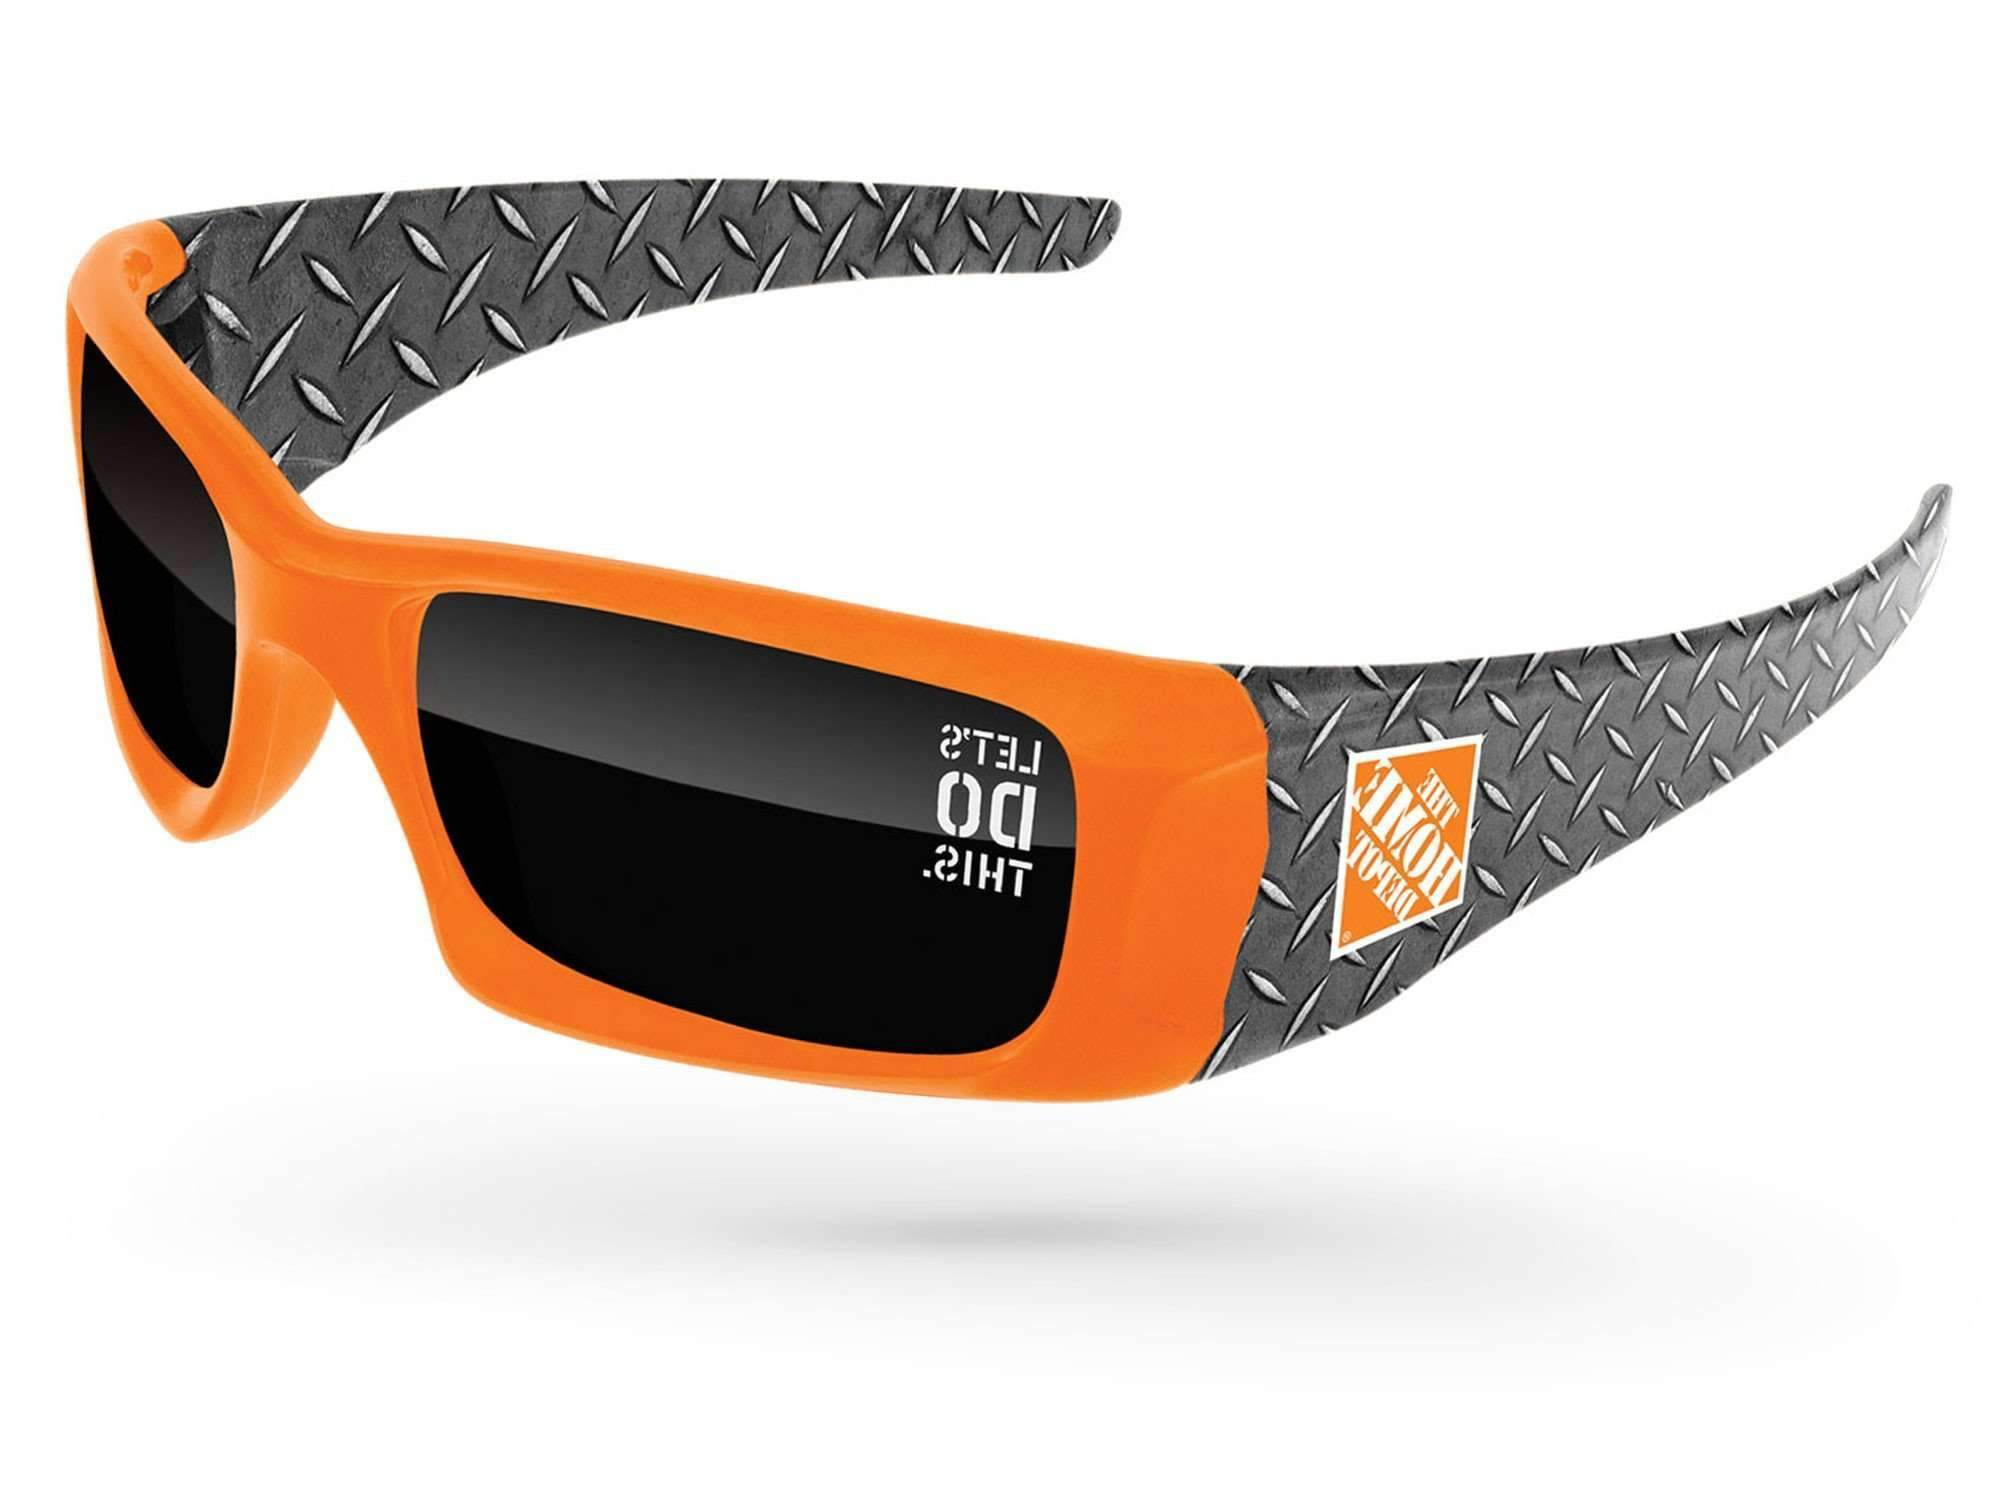 WD580 - Wrap Promotional Sunglasses w/ 1-color lens imprint & full-color arms sublimation wrap